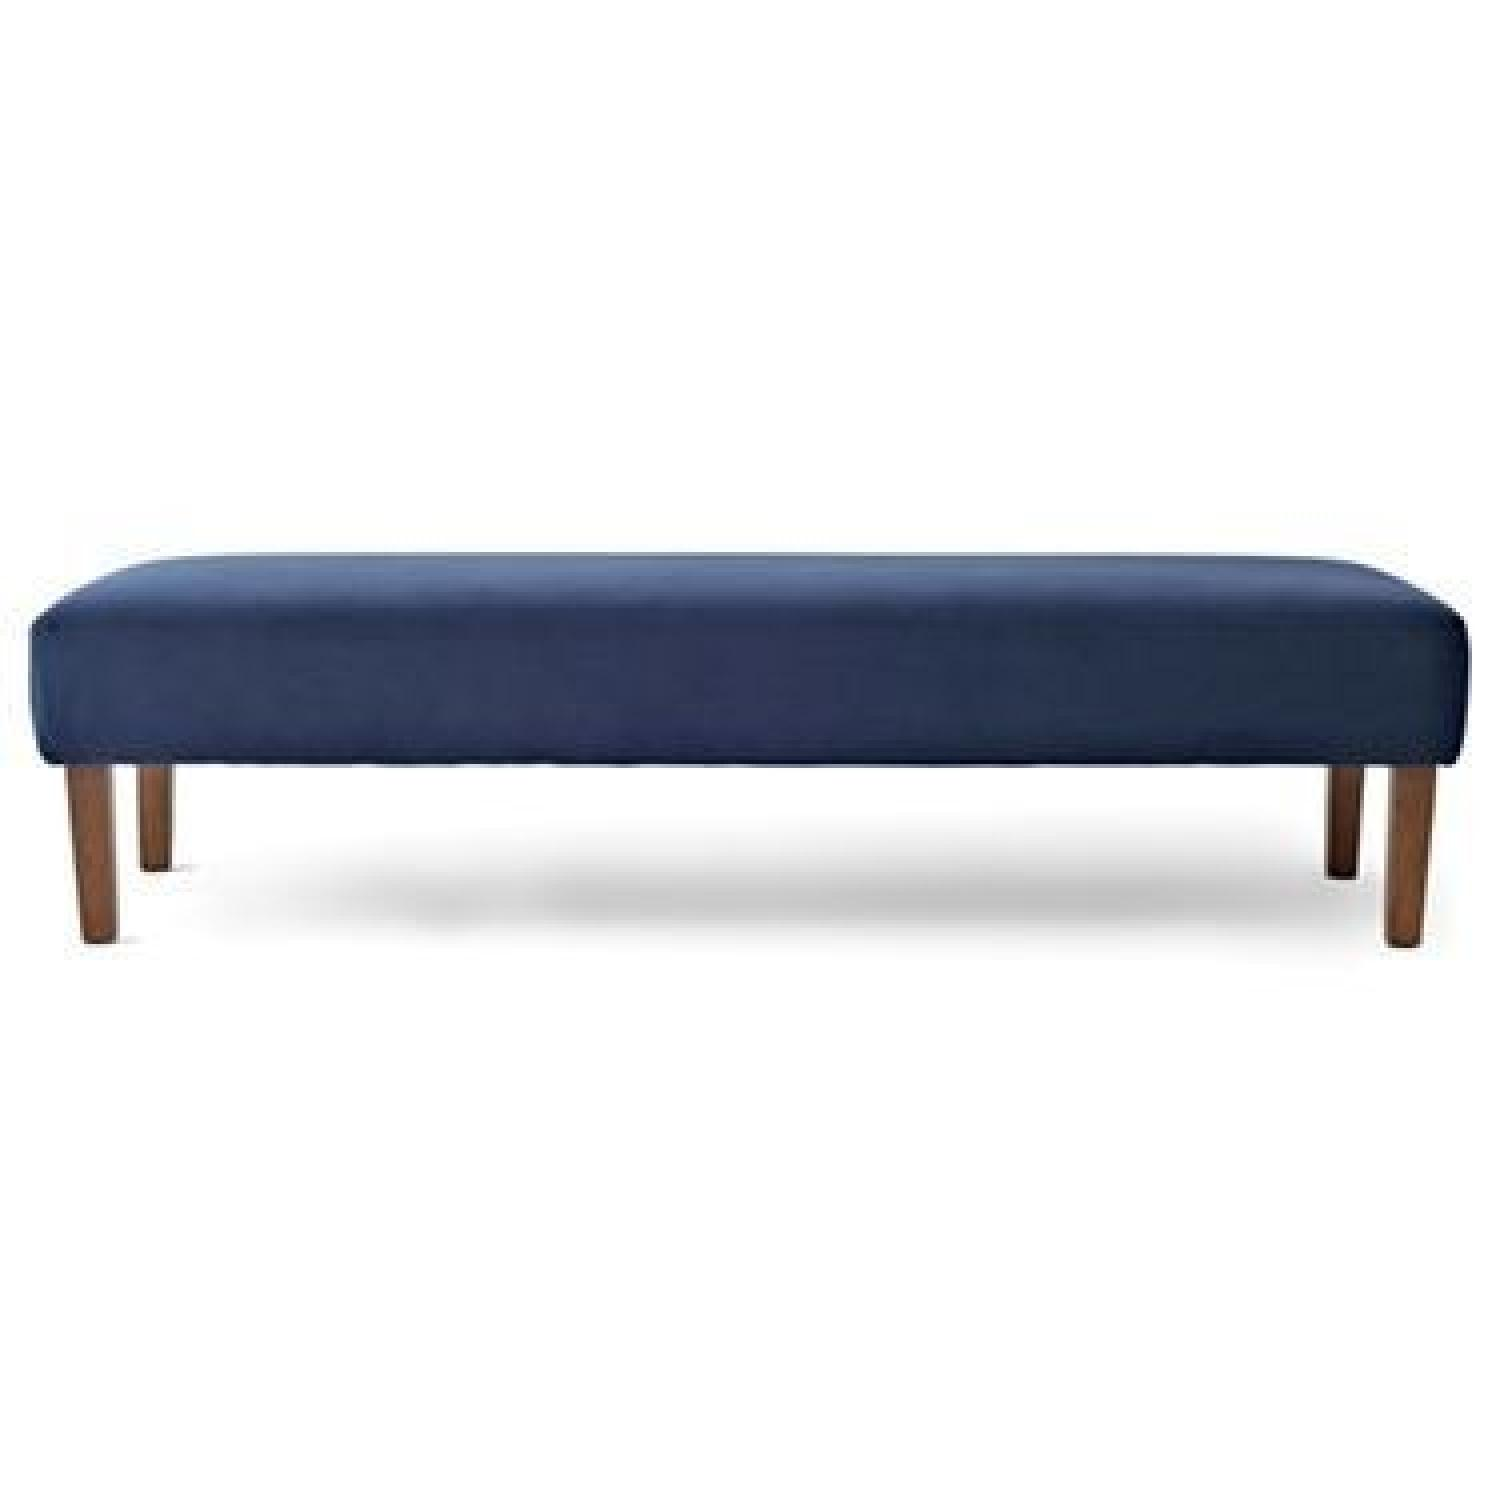 shipping fabric hastings by navy bench christopher home product today with tufted casters free overstock ottoman knight velvet garden